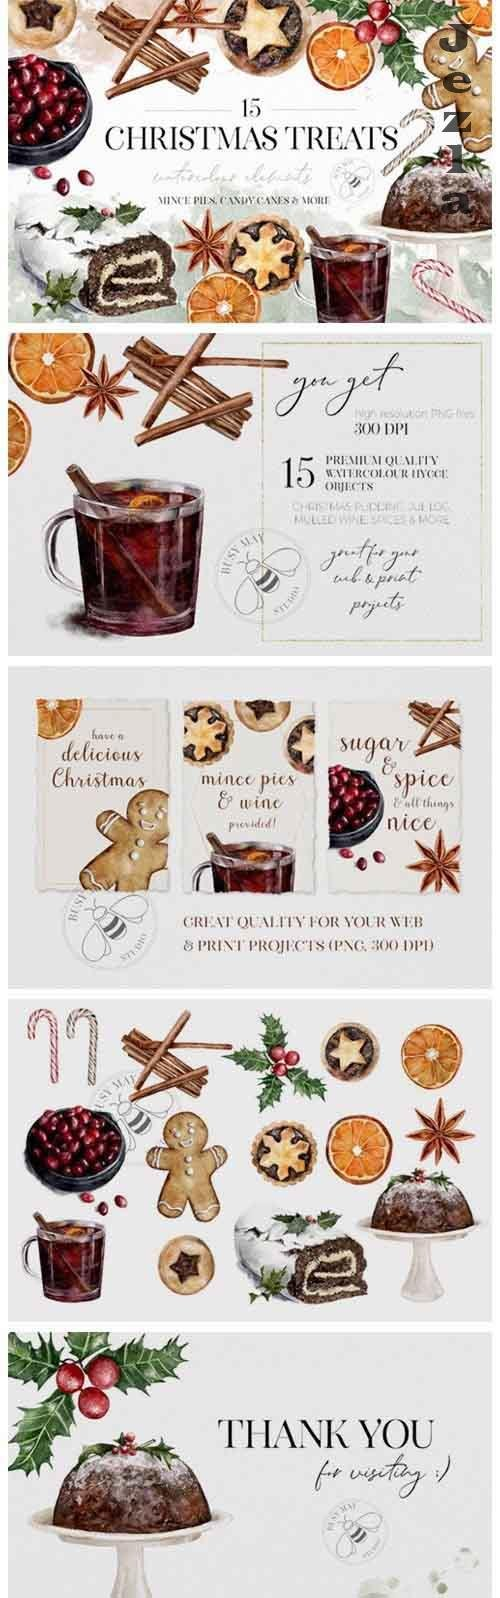 Watercolor Christmas Treats Festive Food Illustration Cake - 1026782